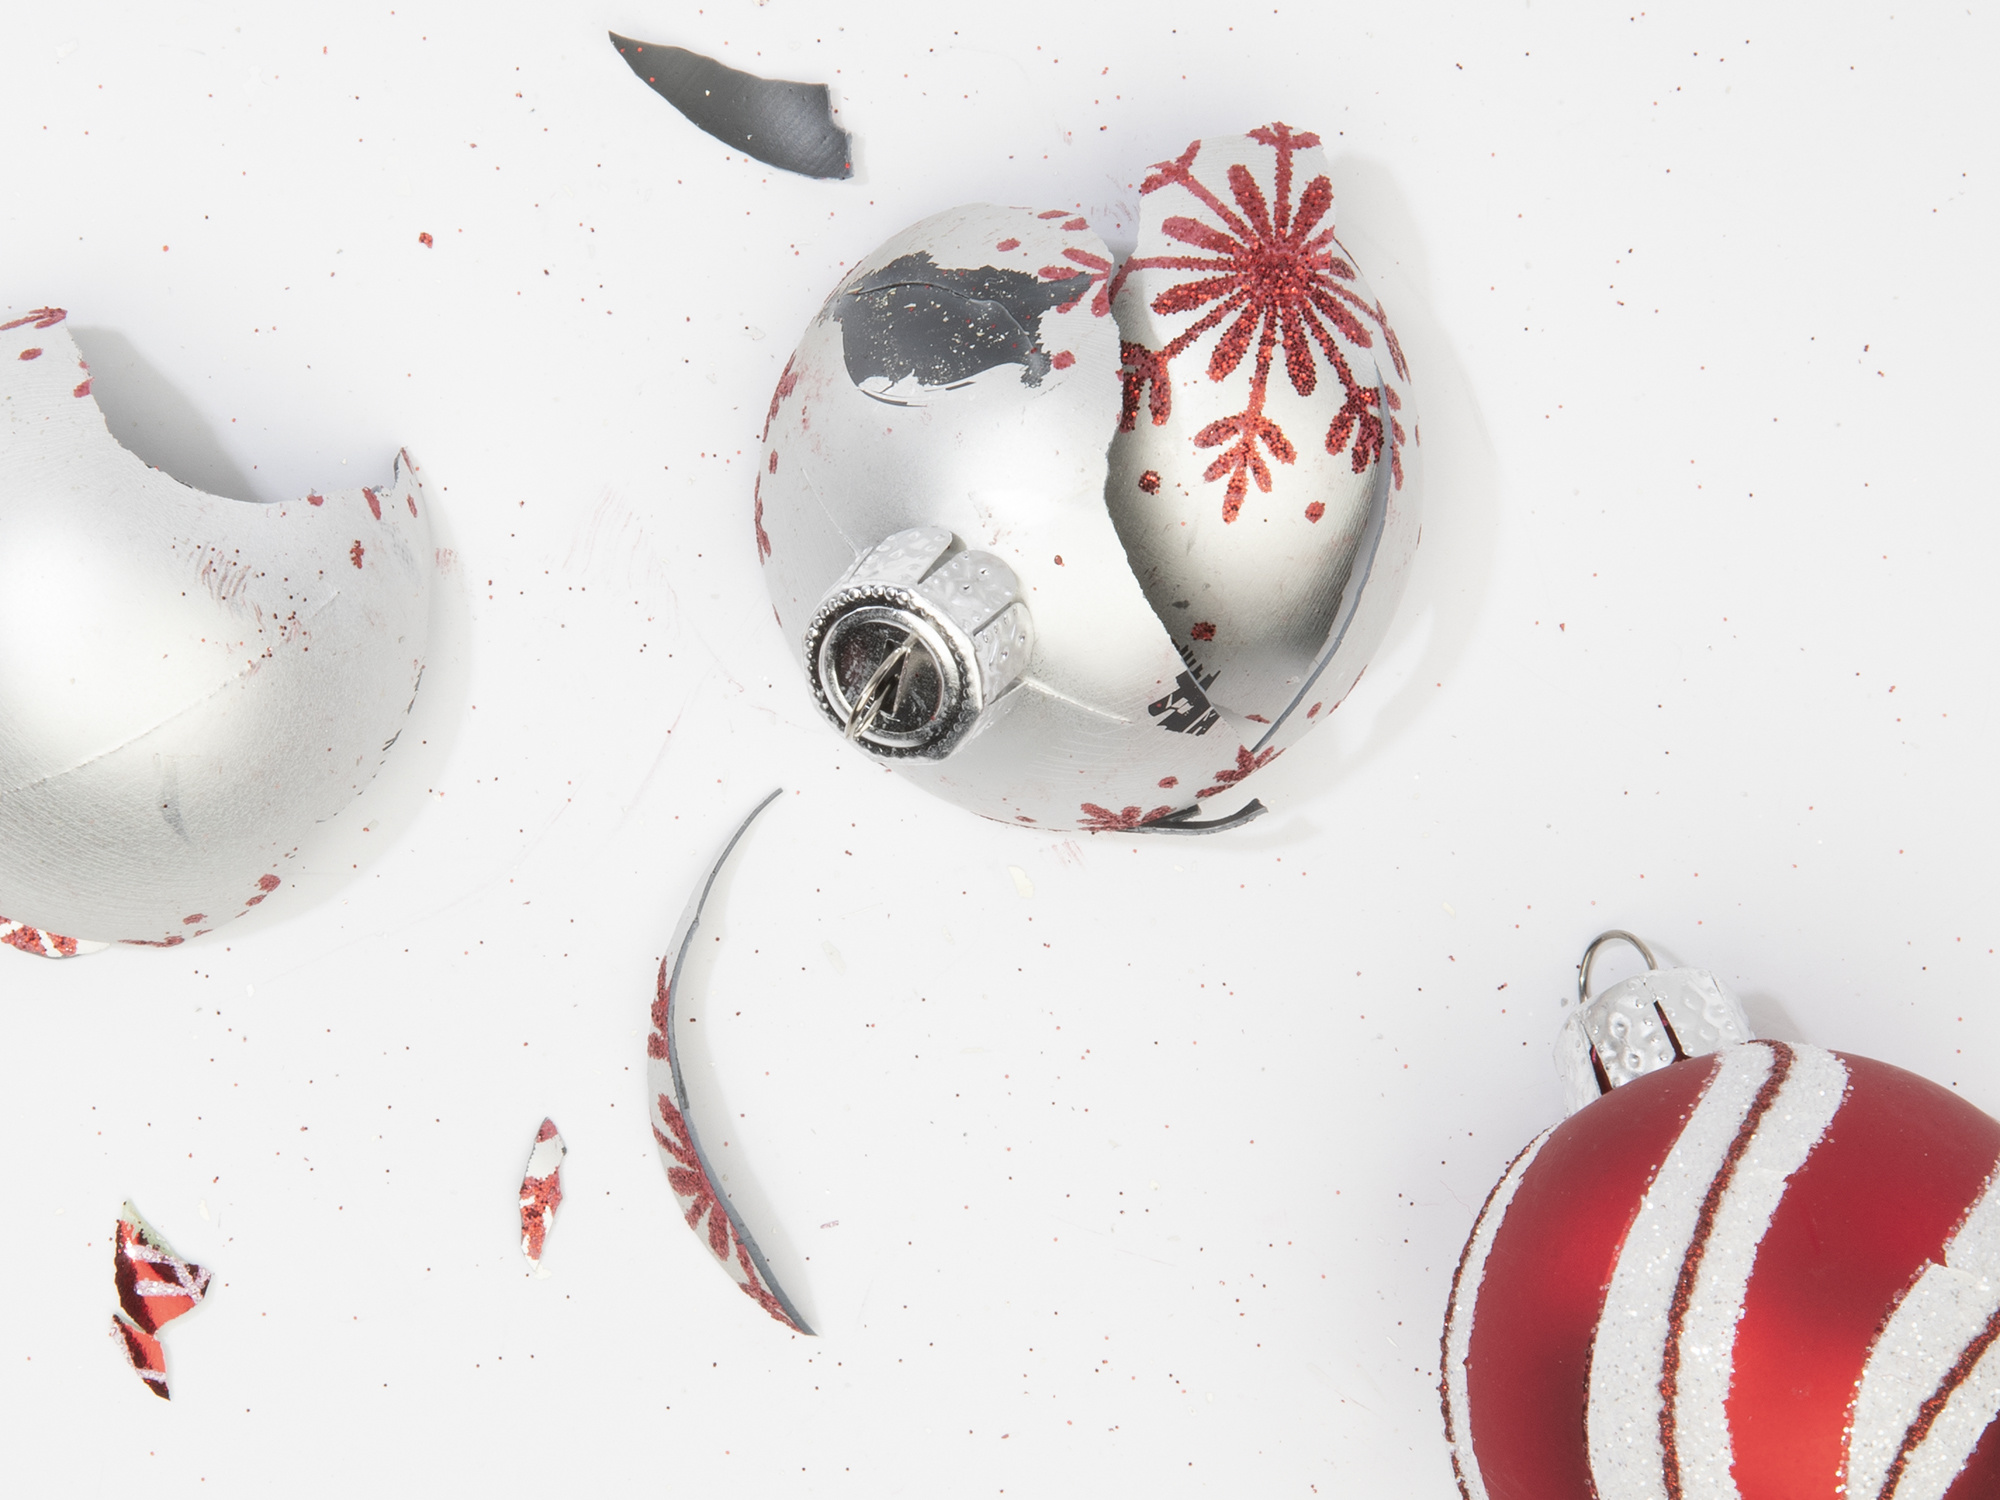 Broken ornaments can risk pet safety